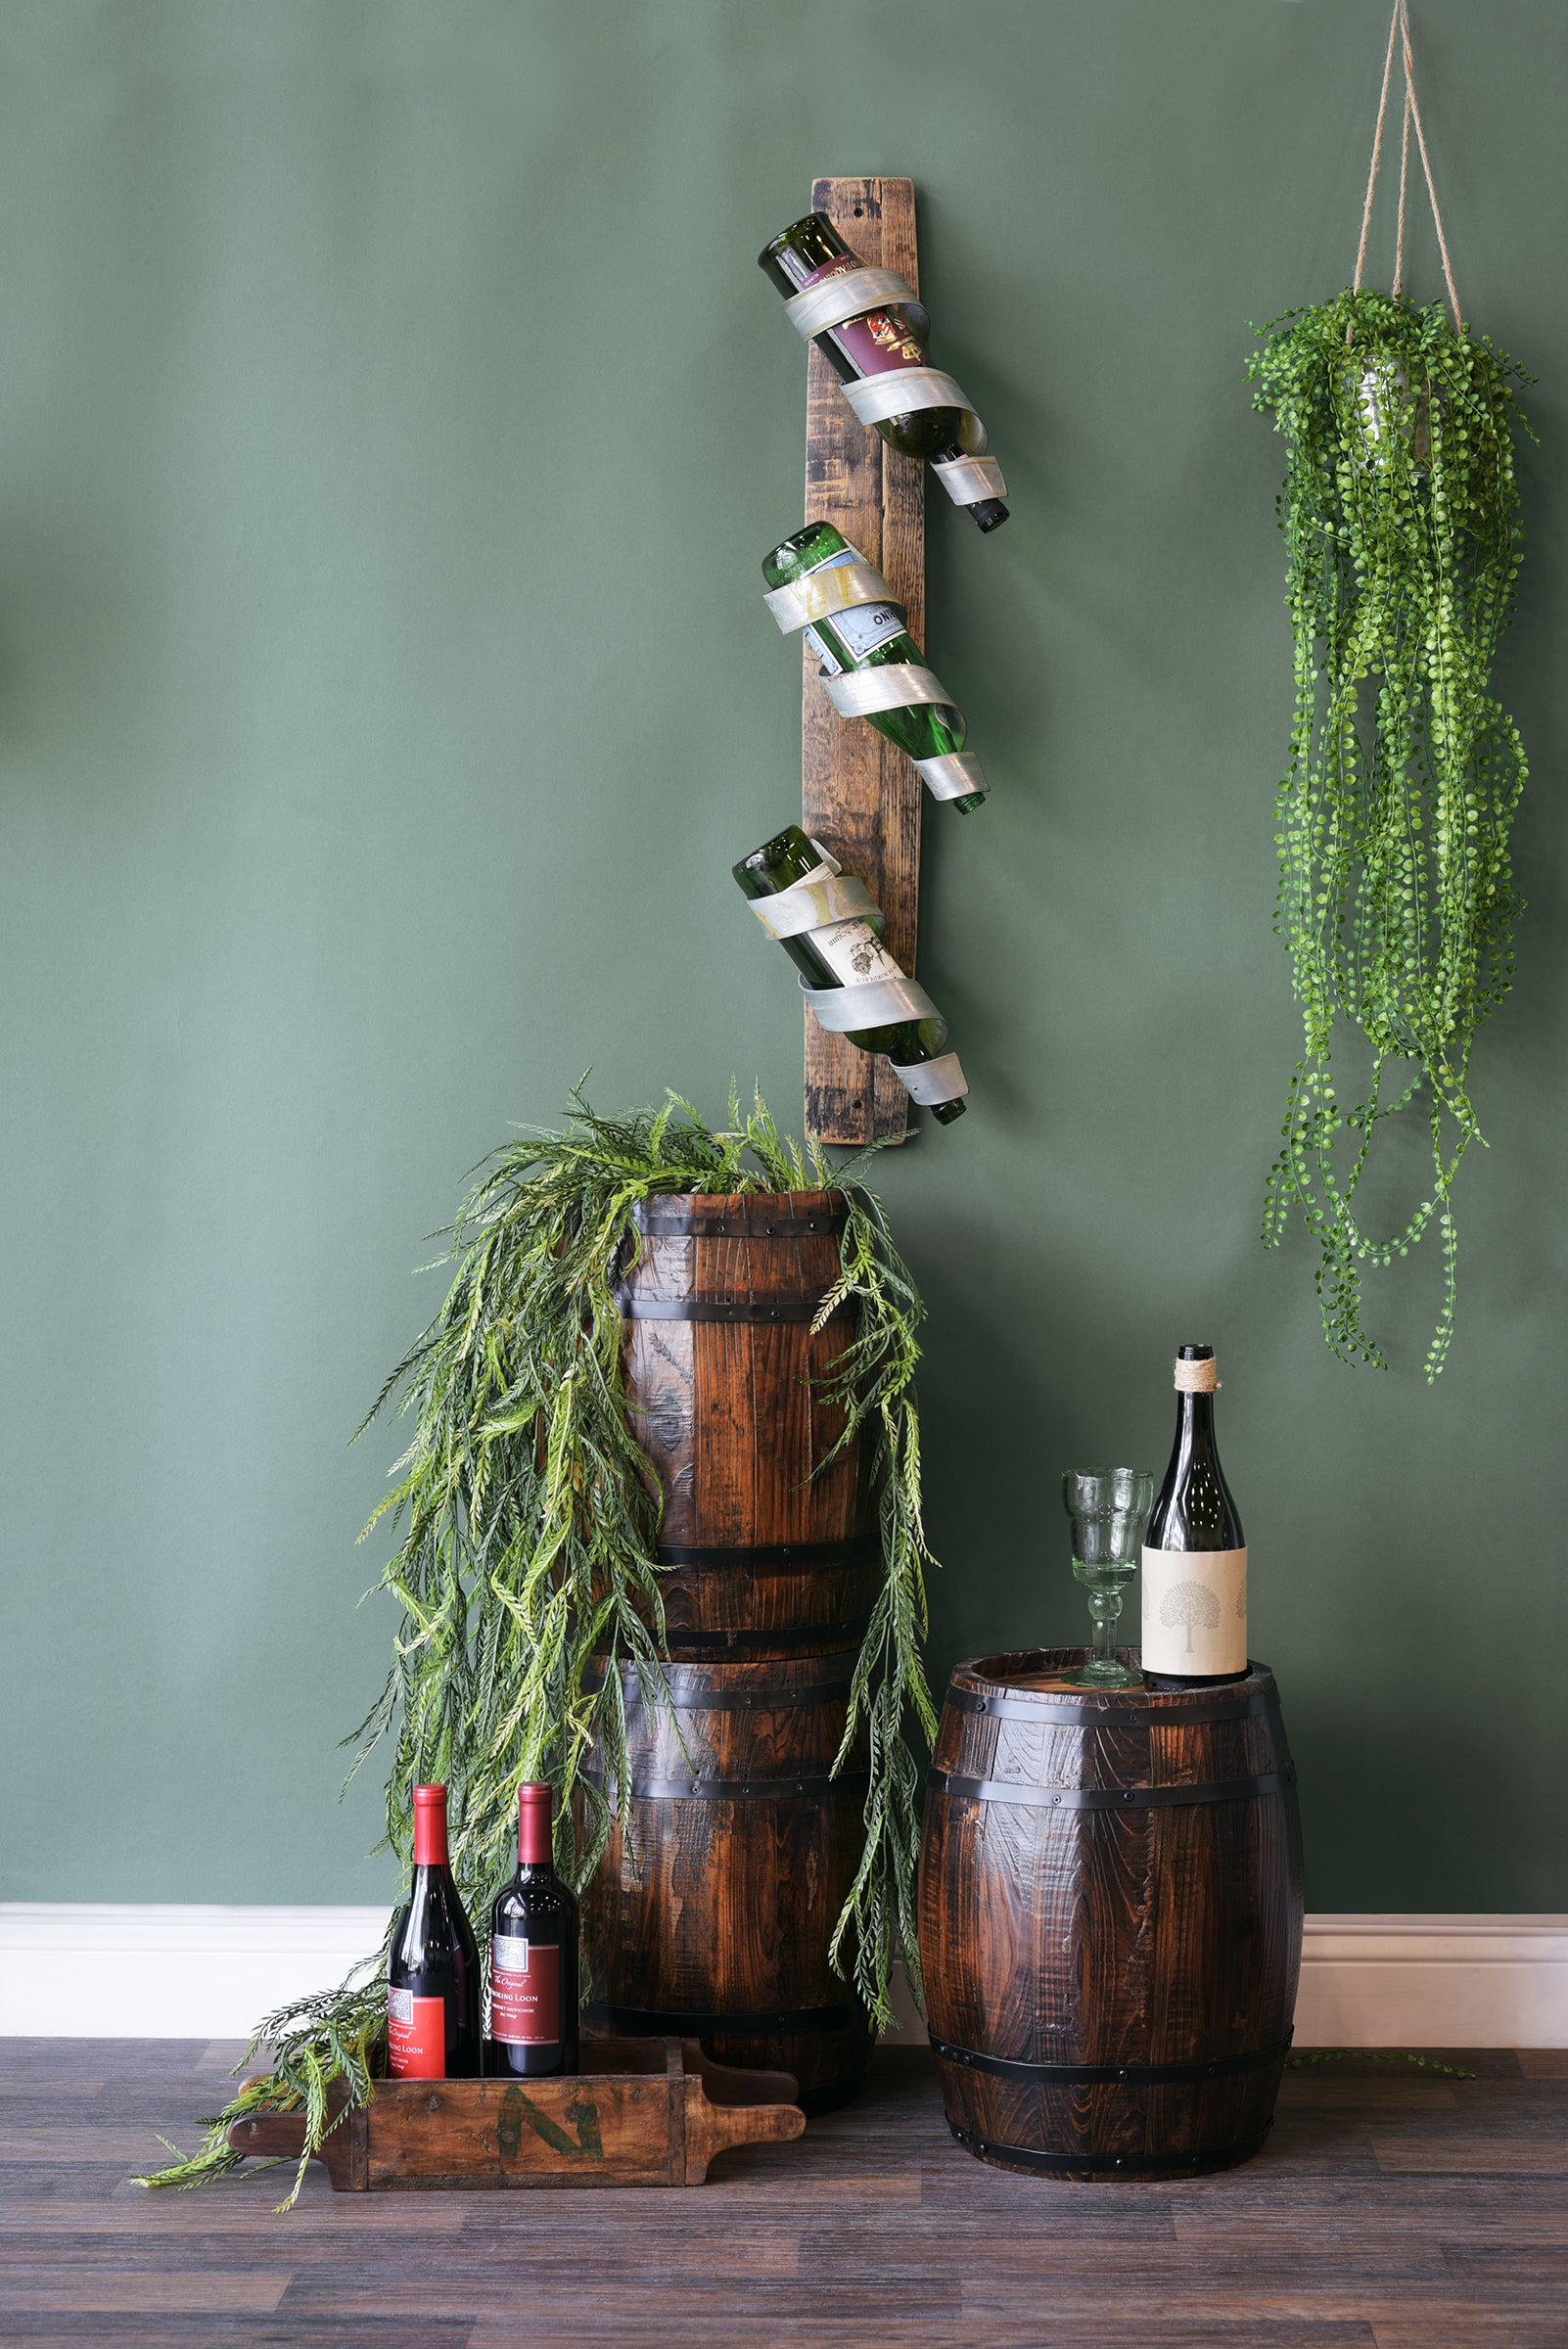 Wall Mount Wine Bottle Rack On Reclaimed Wood Barrel Stave